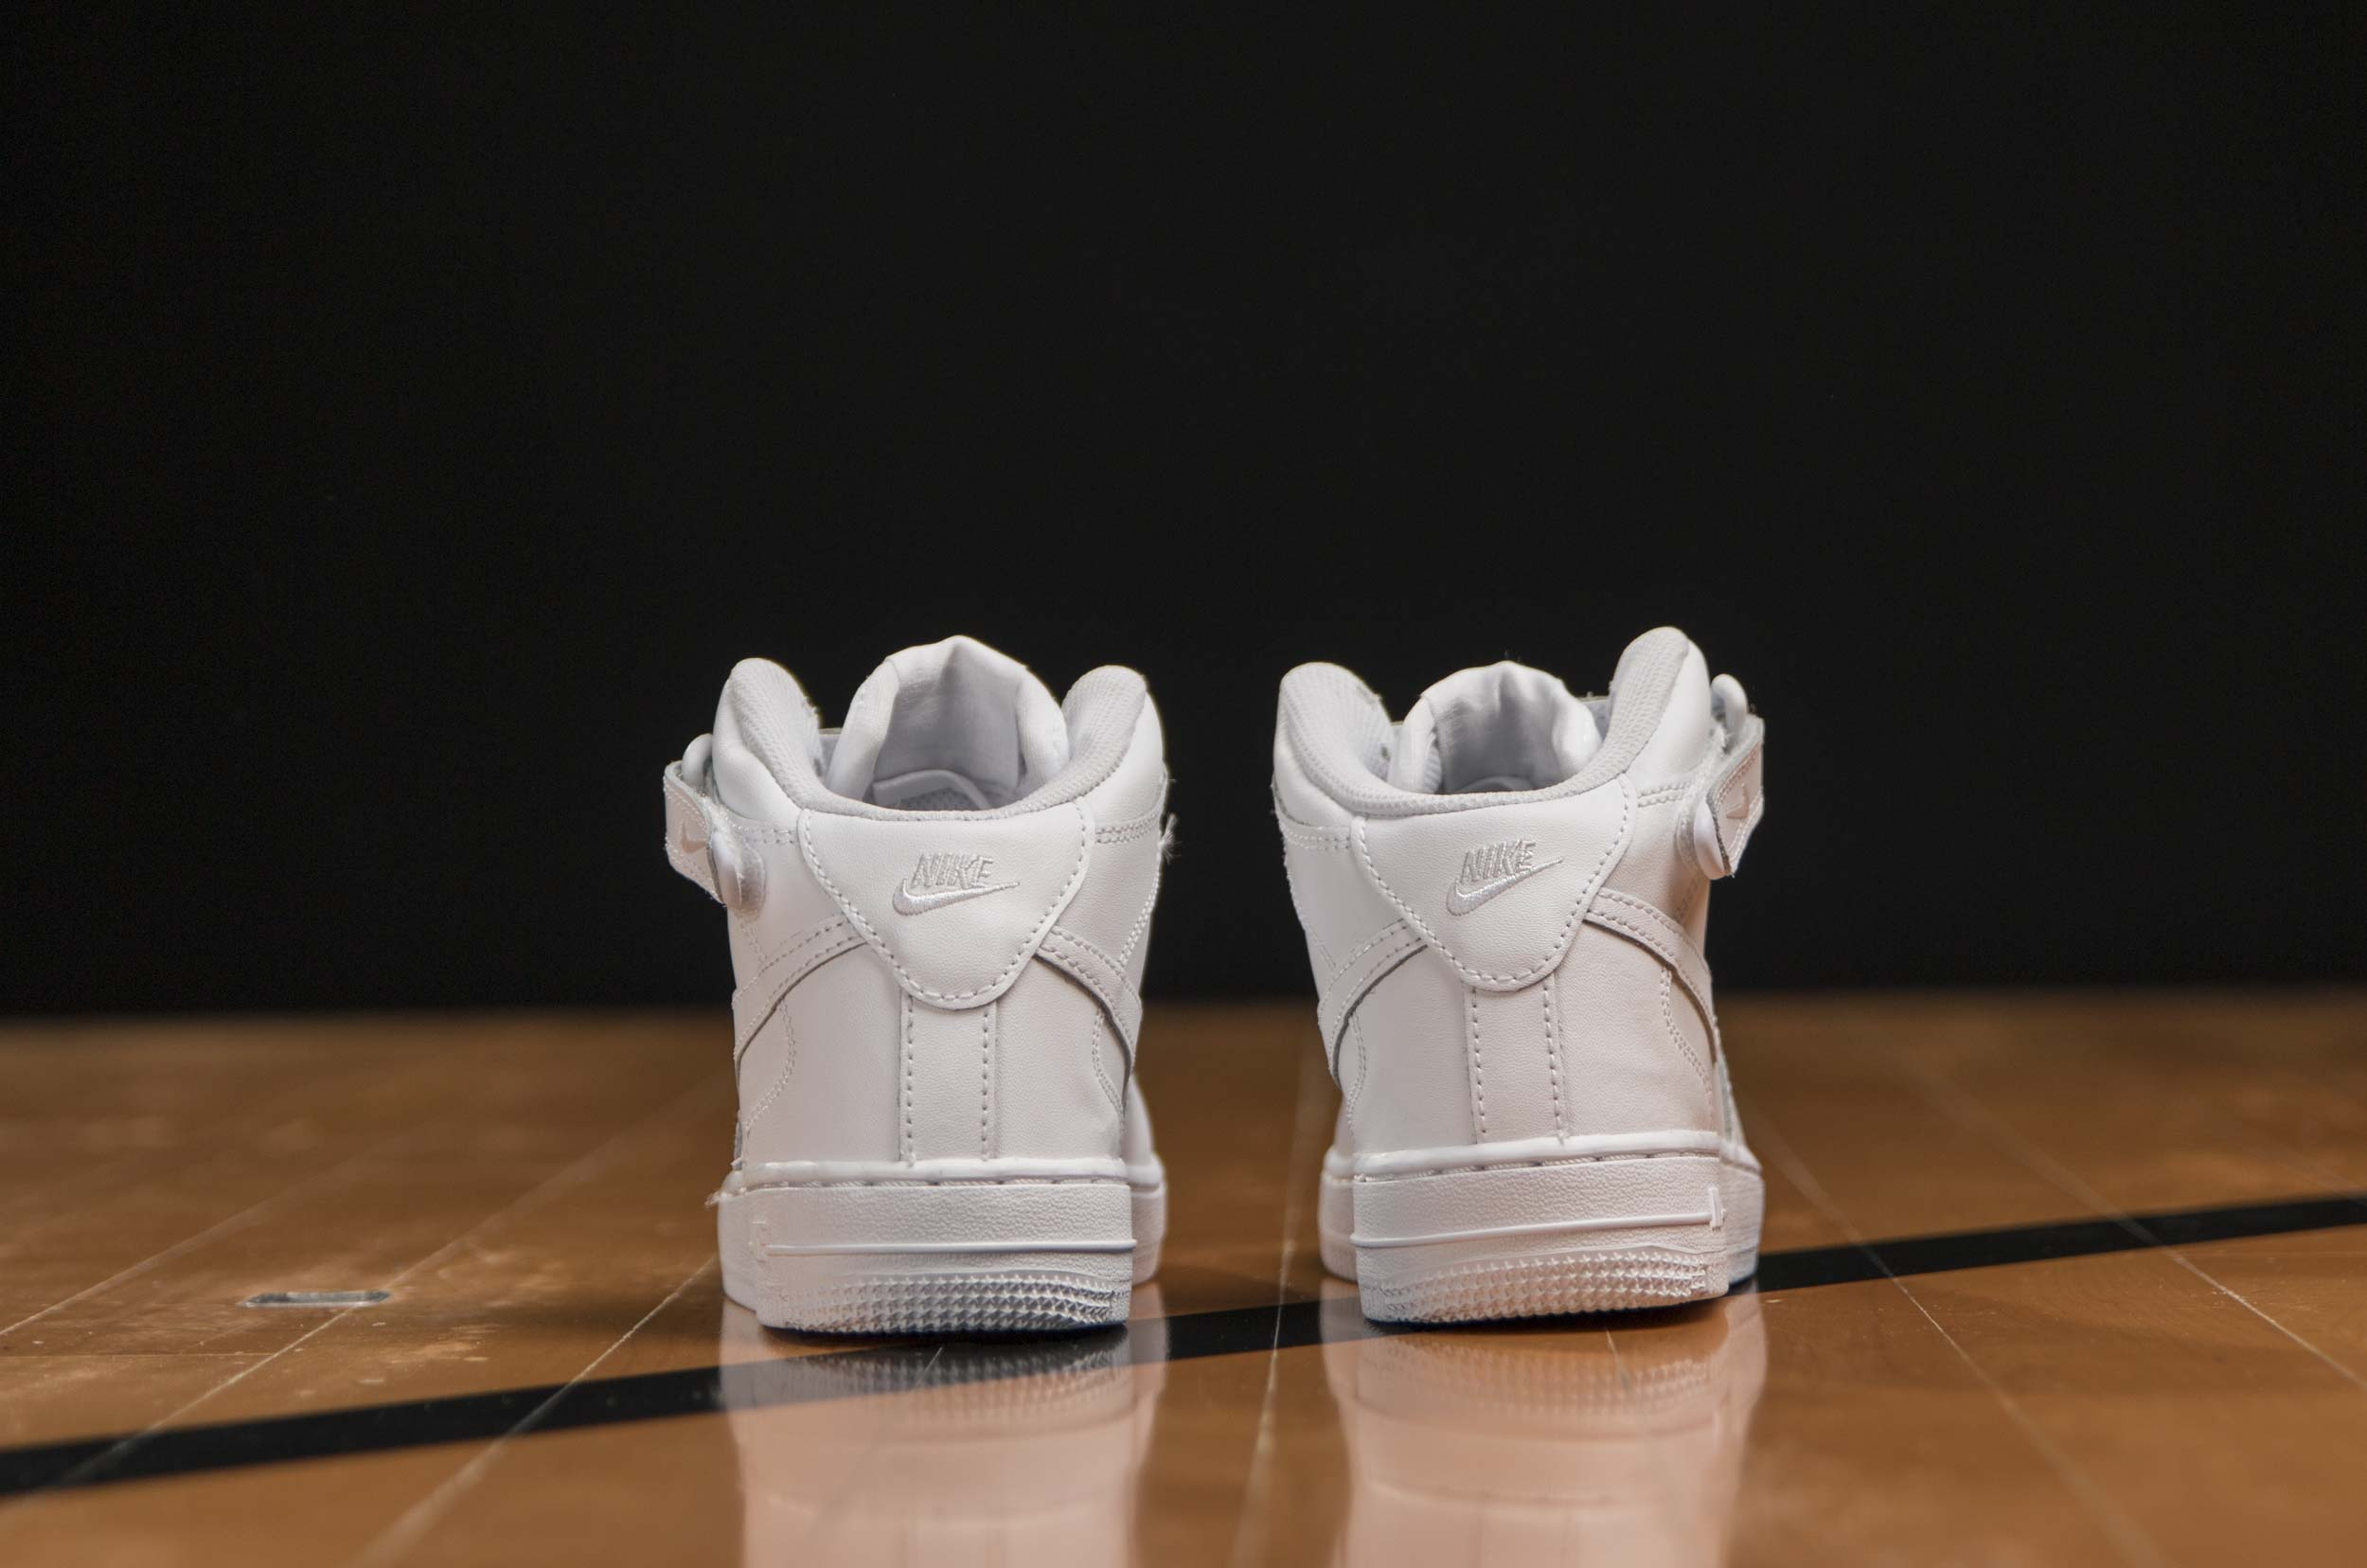 NIKE AIR FORCE 1 MID 314196-113 Λευκό